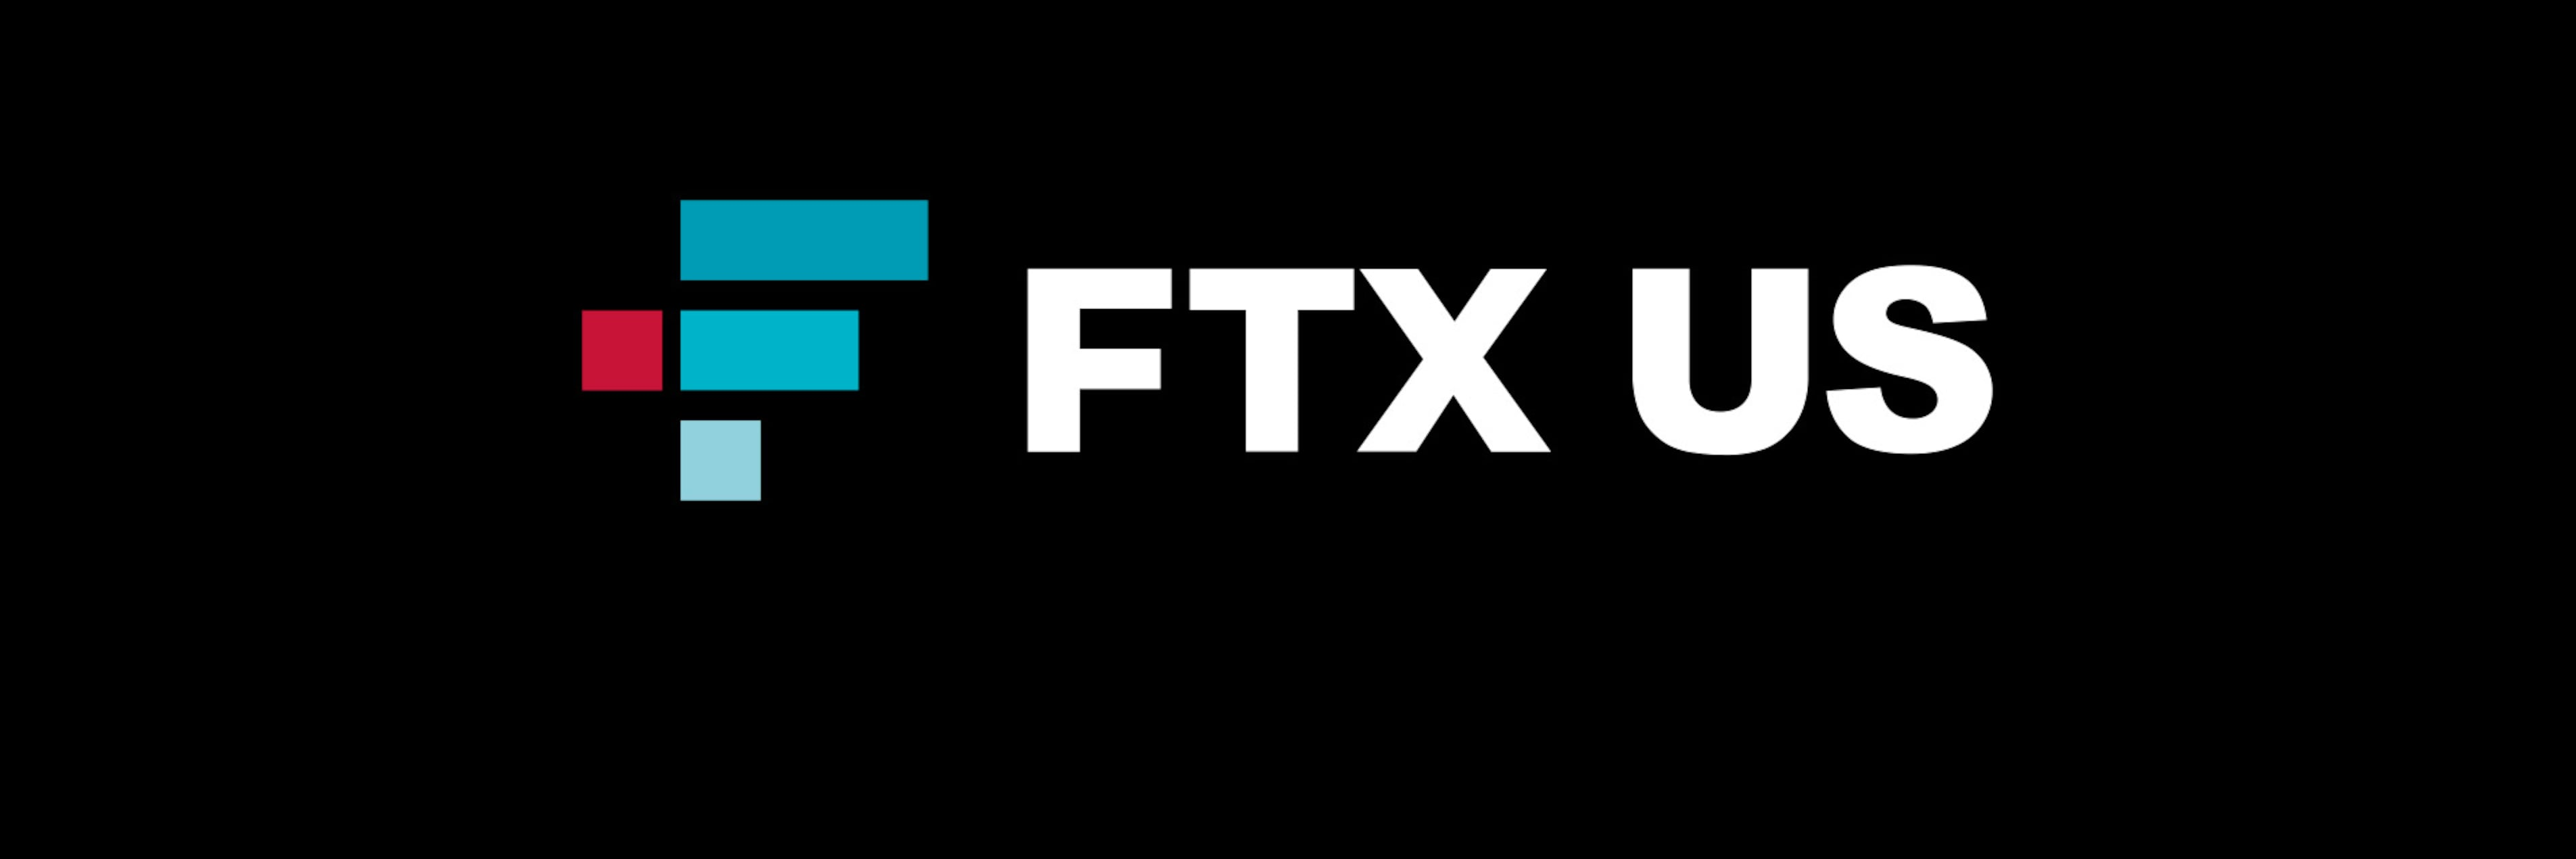 HEAT partners with FTX.us